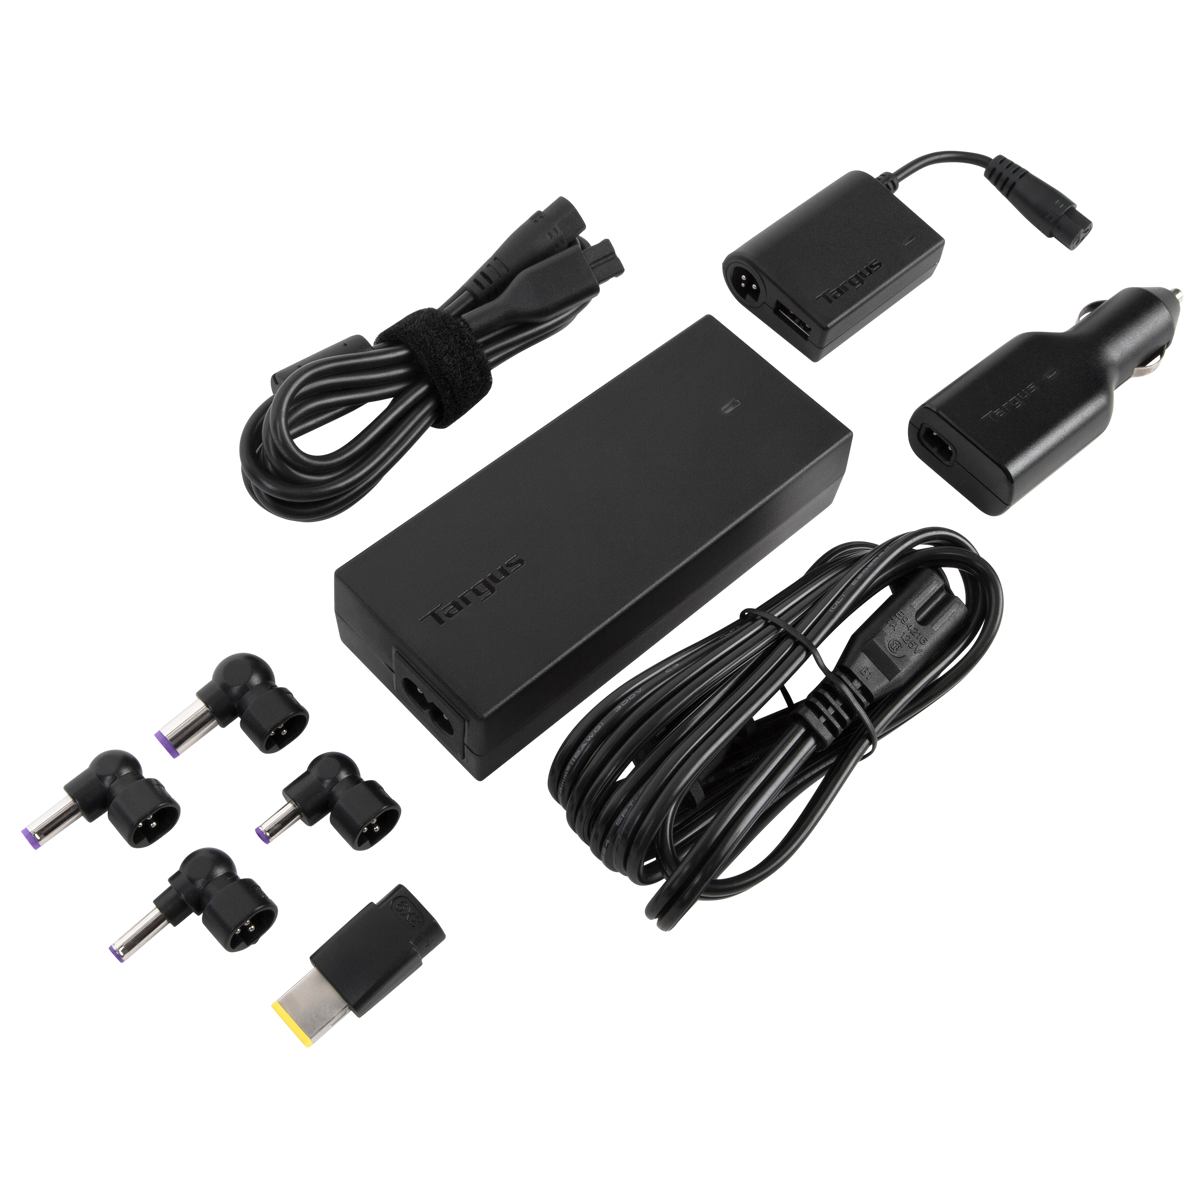 Laptop car charger dc apd33us black chargers targus laptop travel charger with usb fast charging port sciox Images